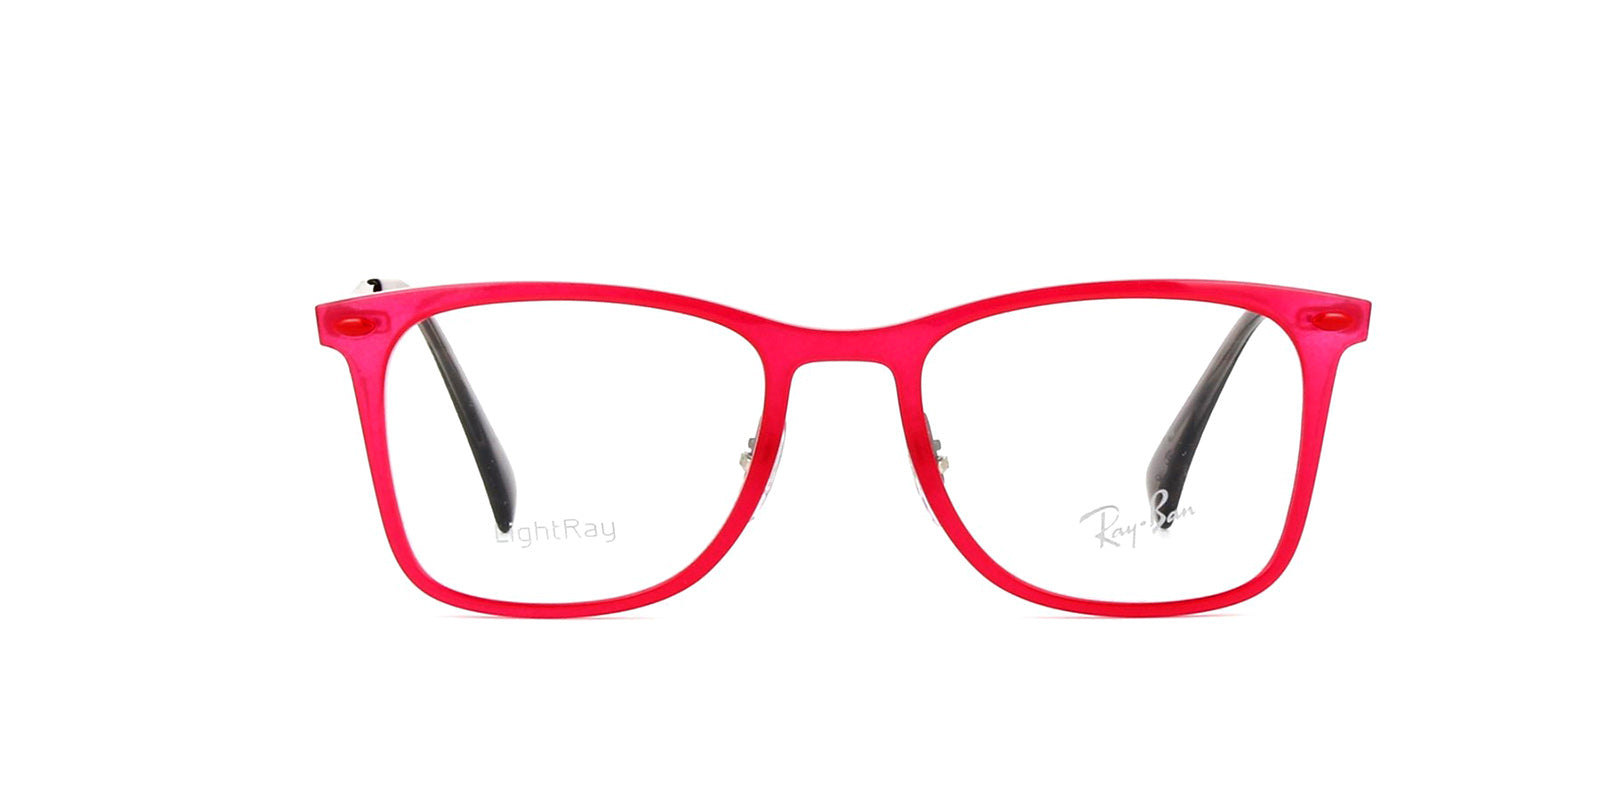 Ray Ban Eyeglasses LightRay RB7086 5641 Rx-ABLE